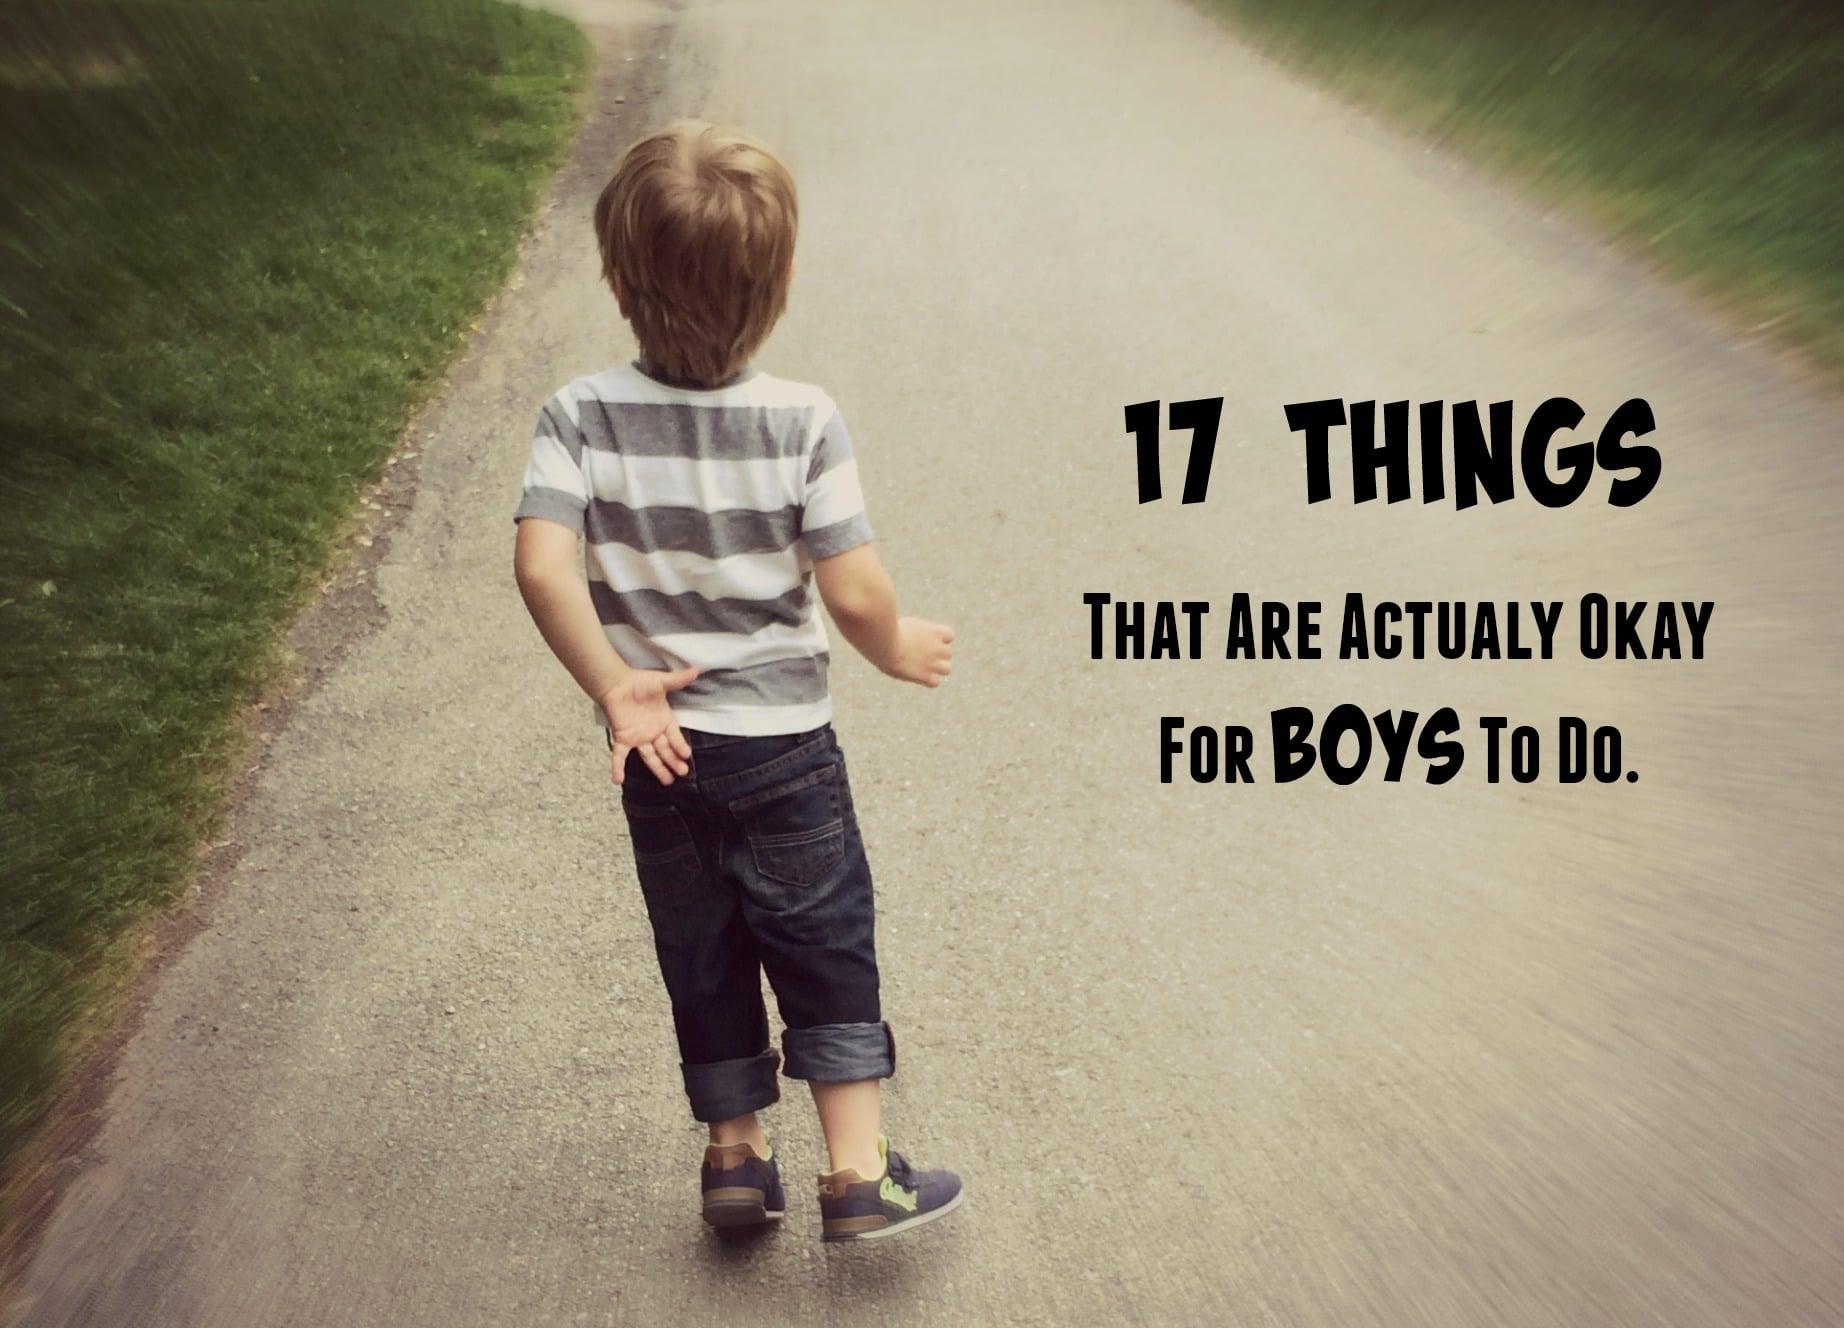 Parenting Humor -17 Things That Are Actually Okay for Boys to do